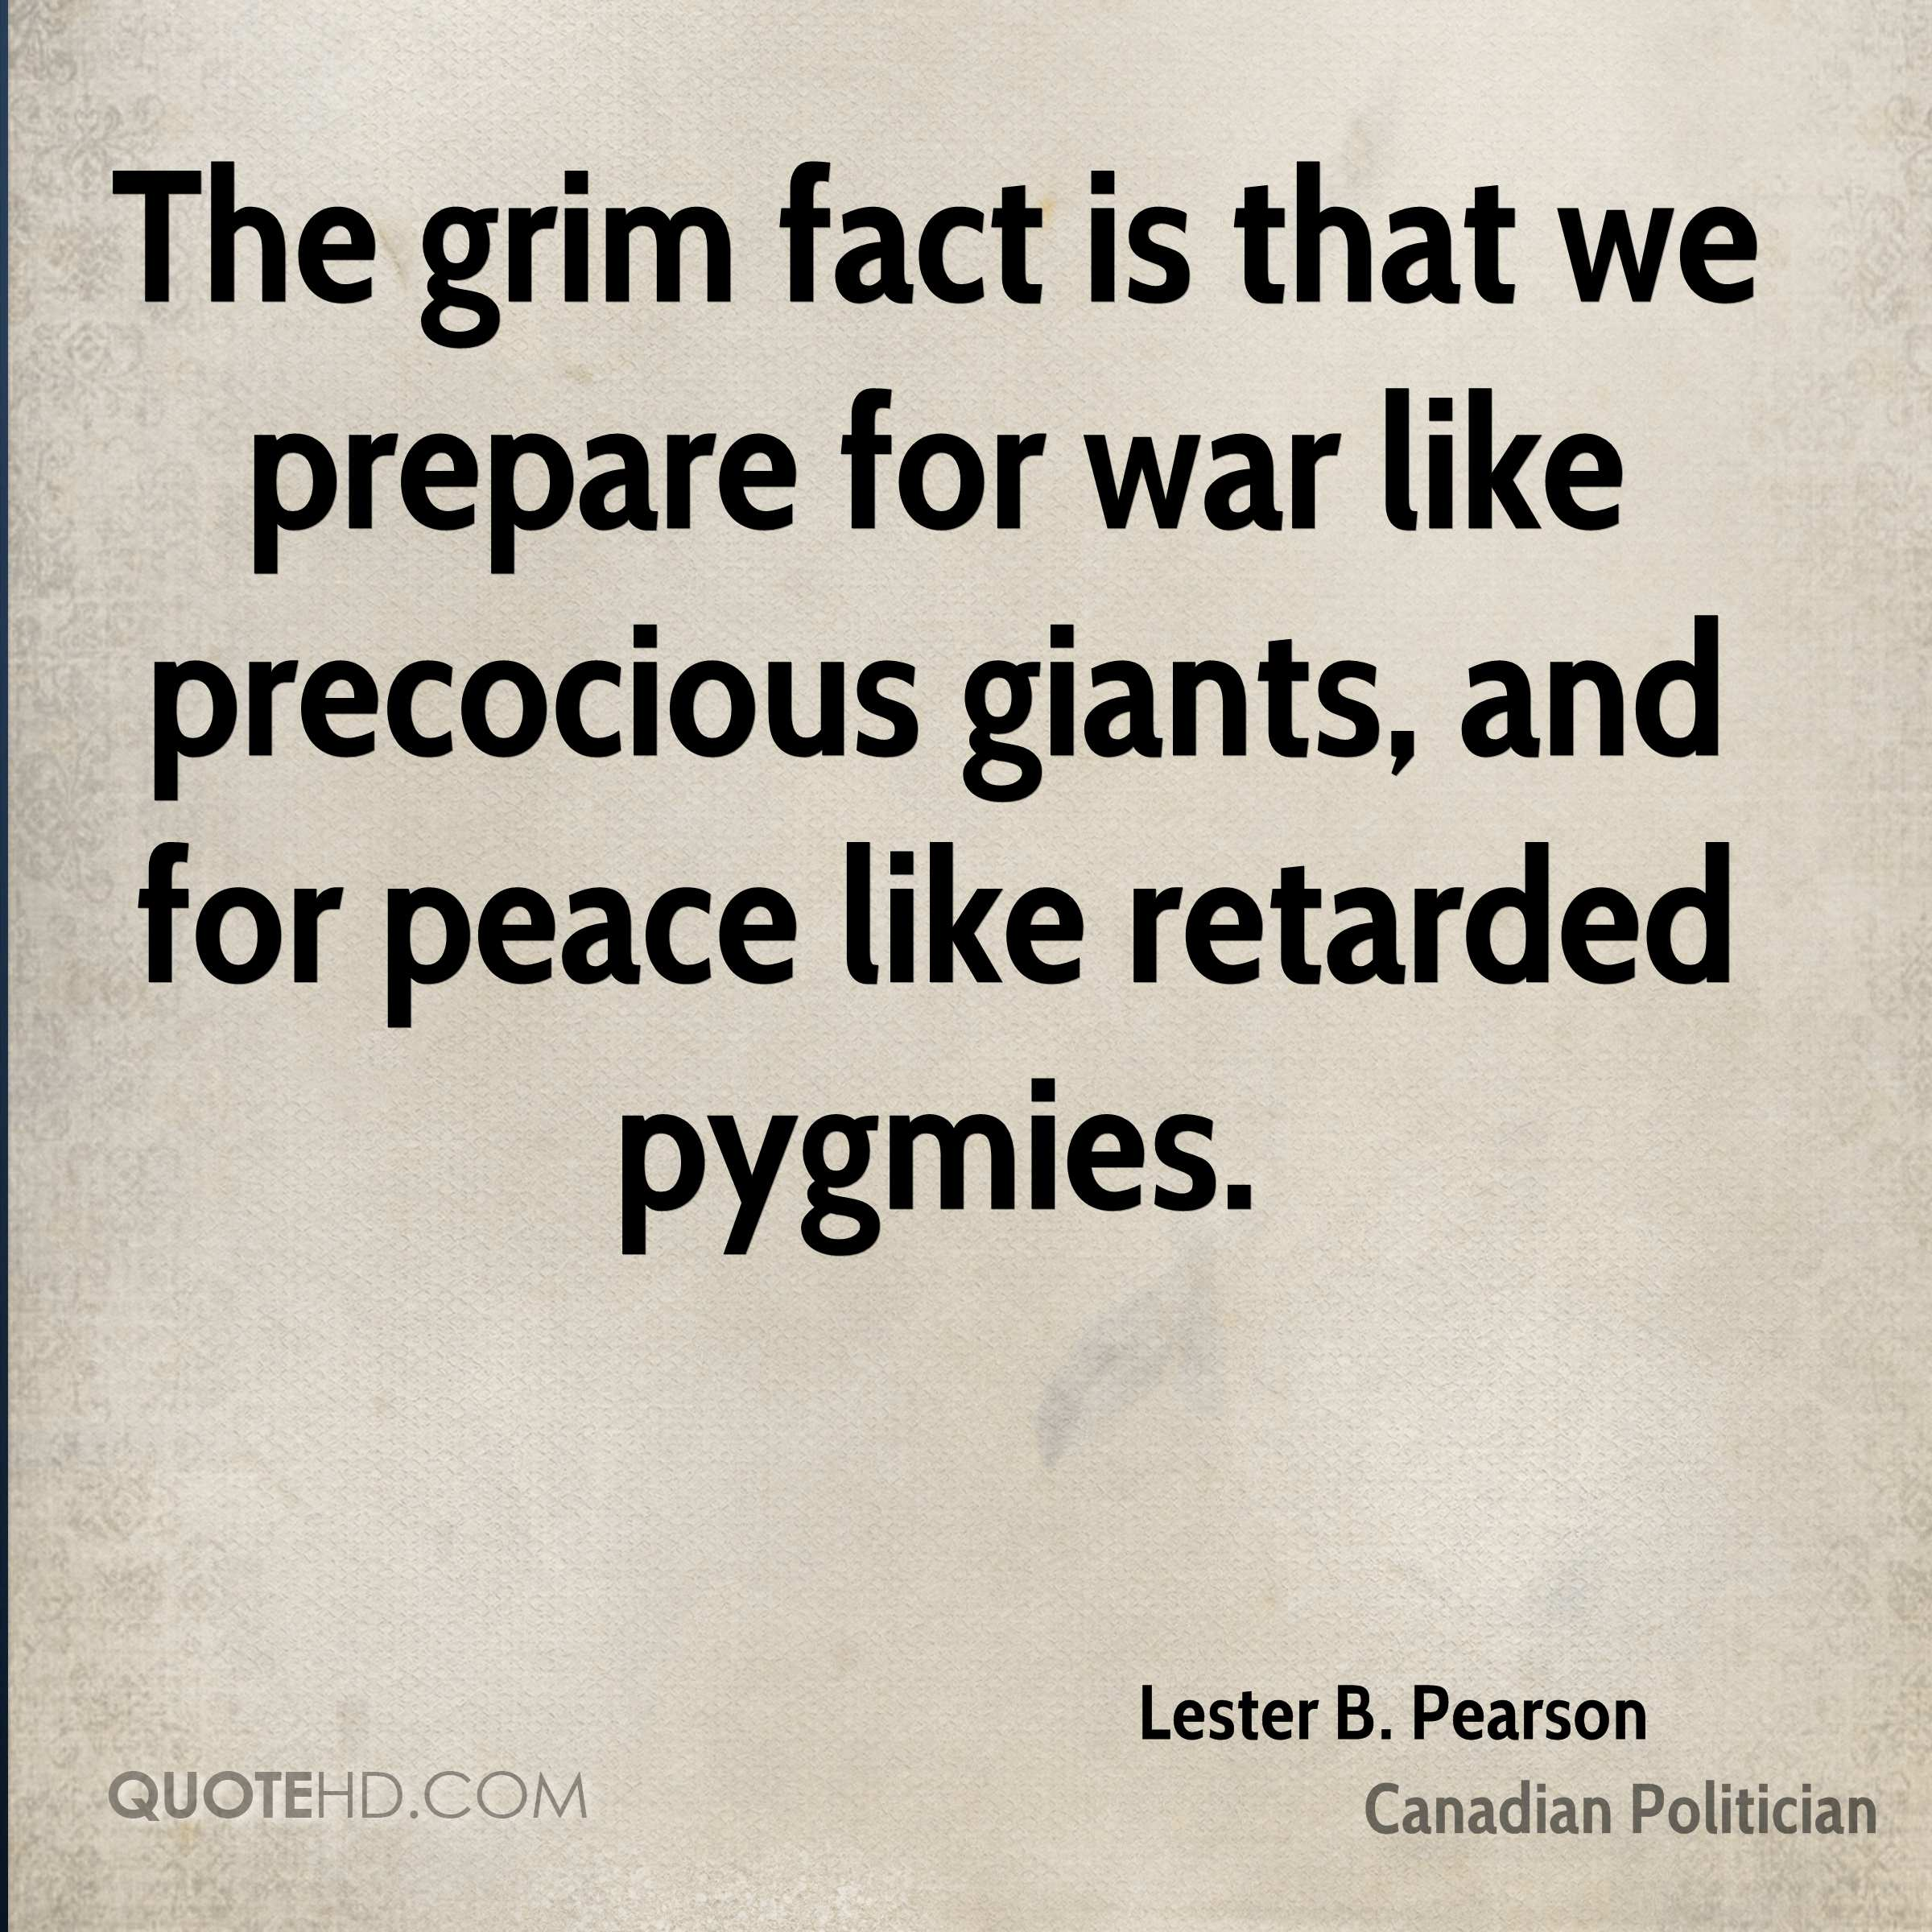 The grim fact is that we prepare for war like precocious giants, and for peace like retarded pygmies.